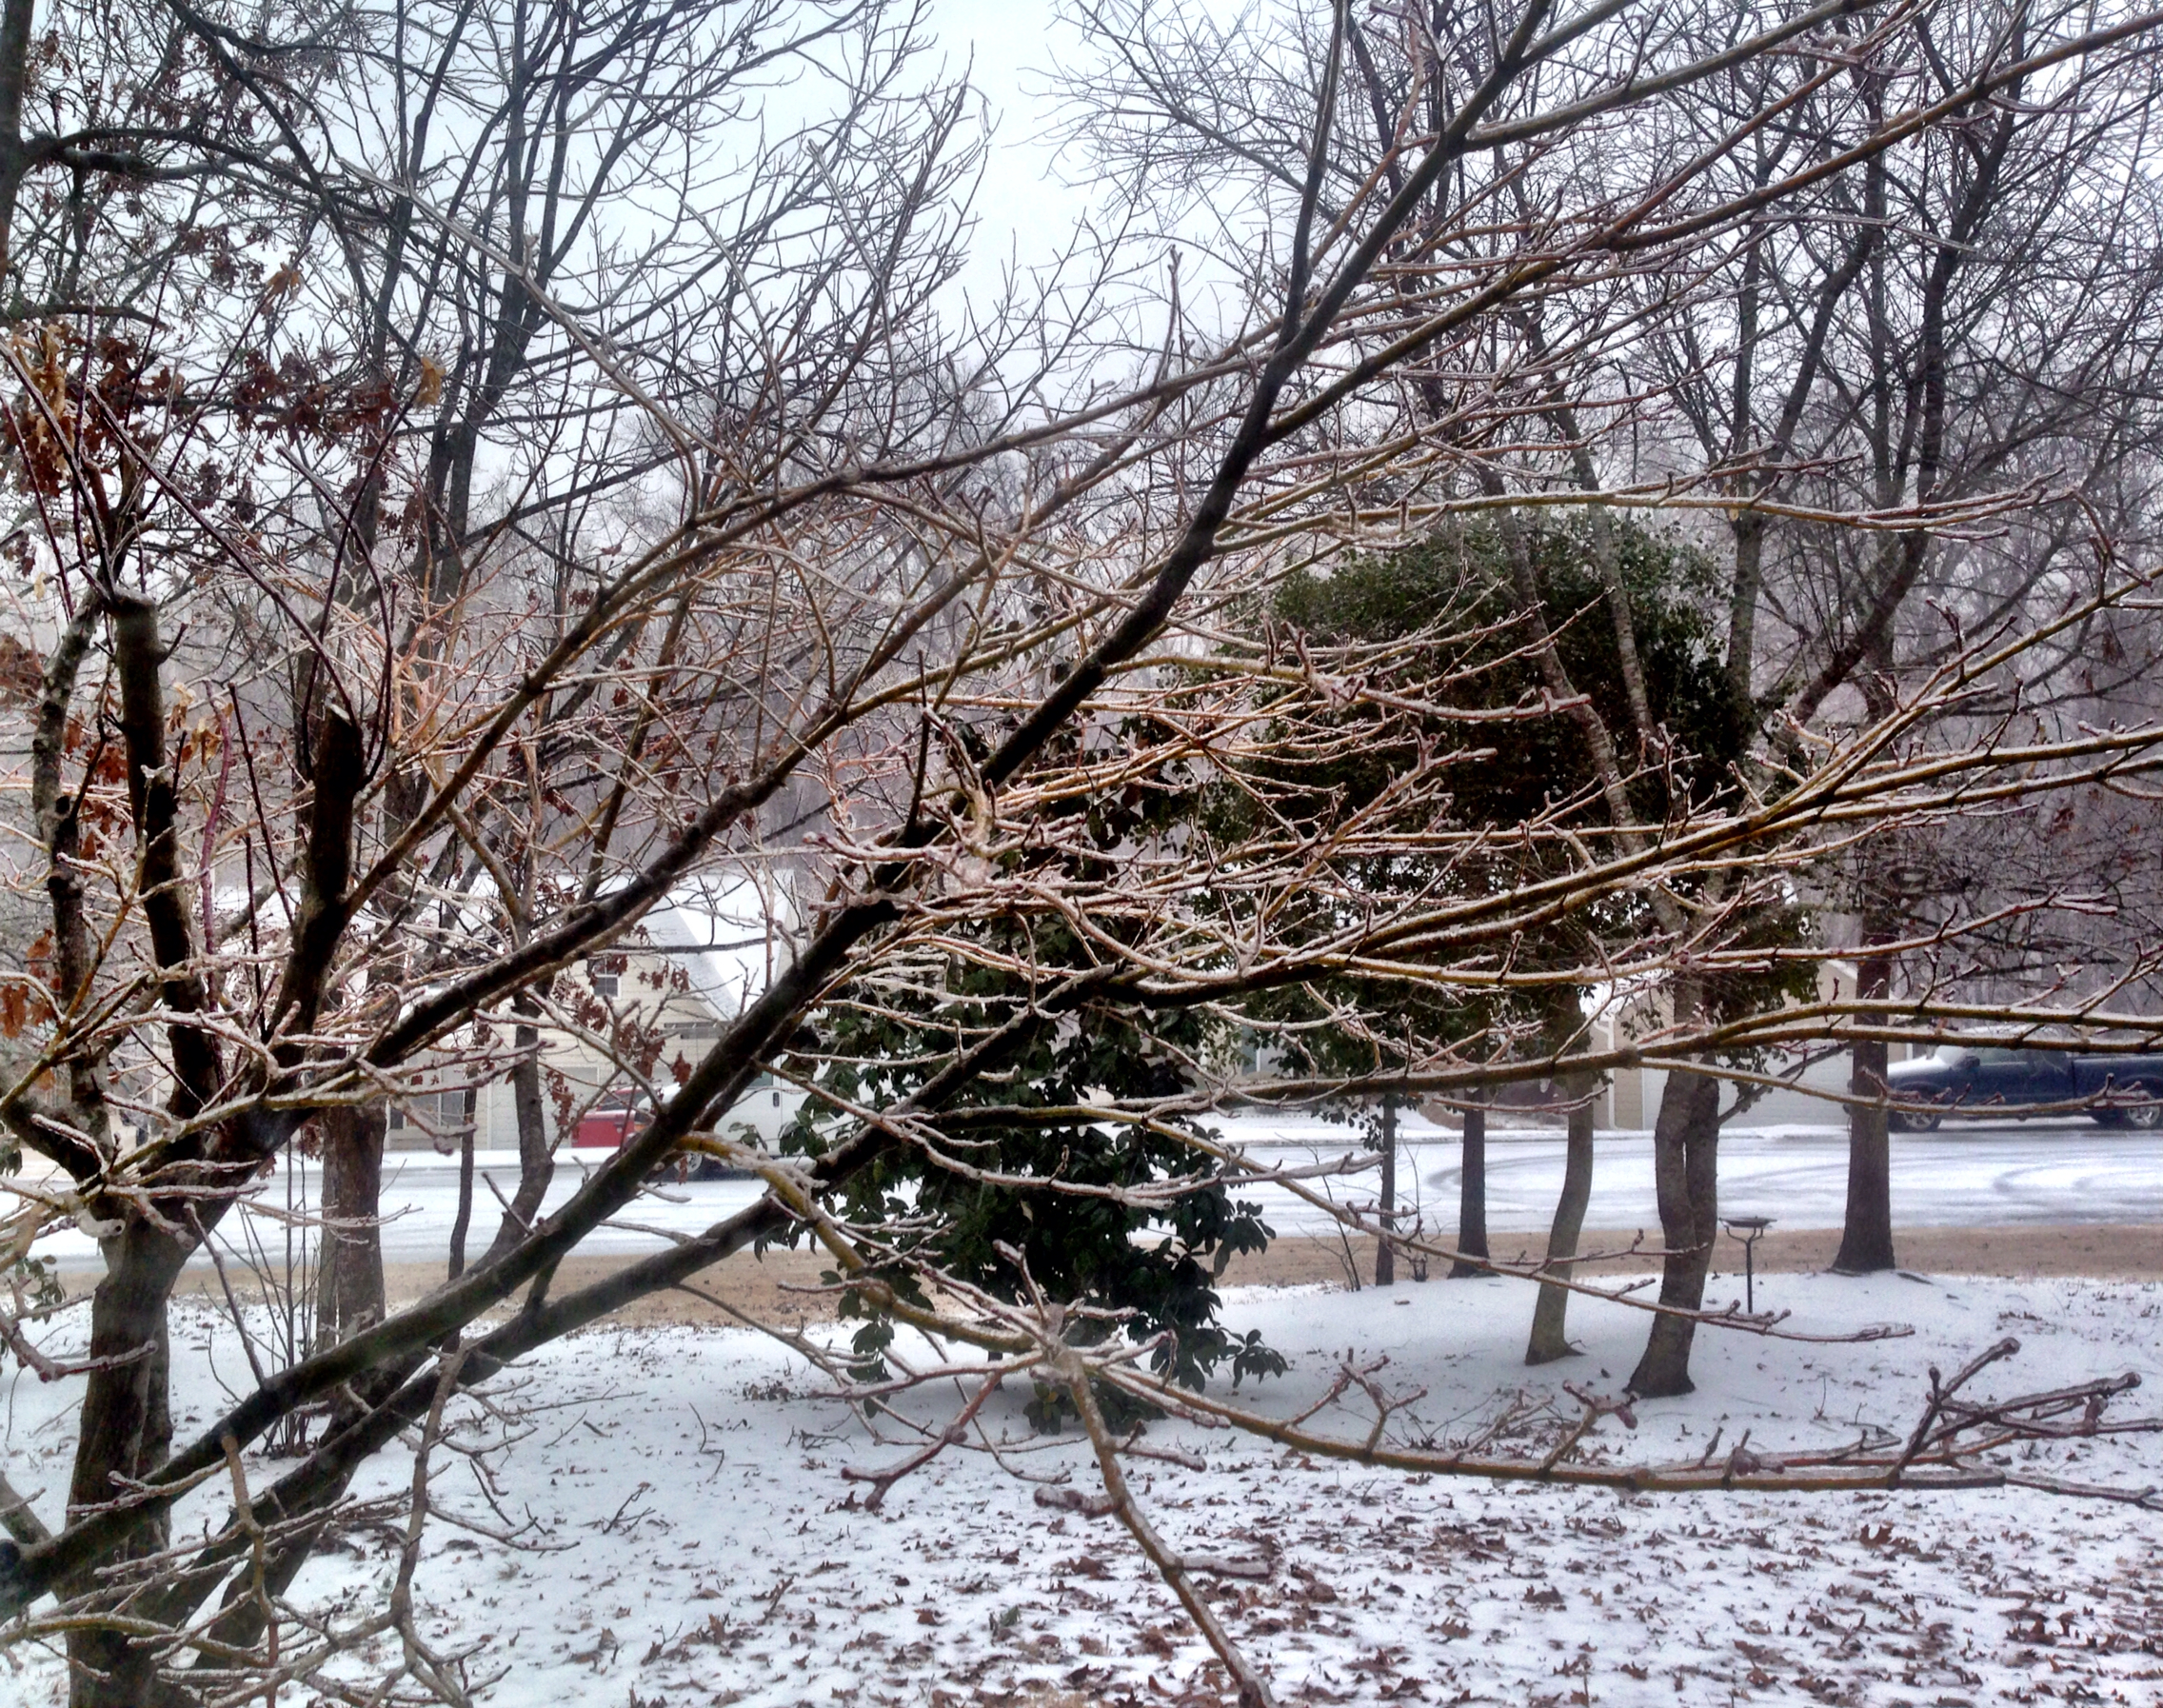 2014 Winter Storm II: The Return of the Ice.